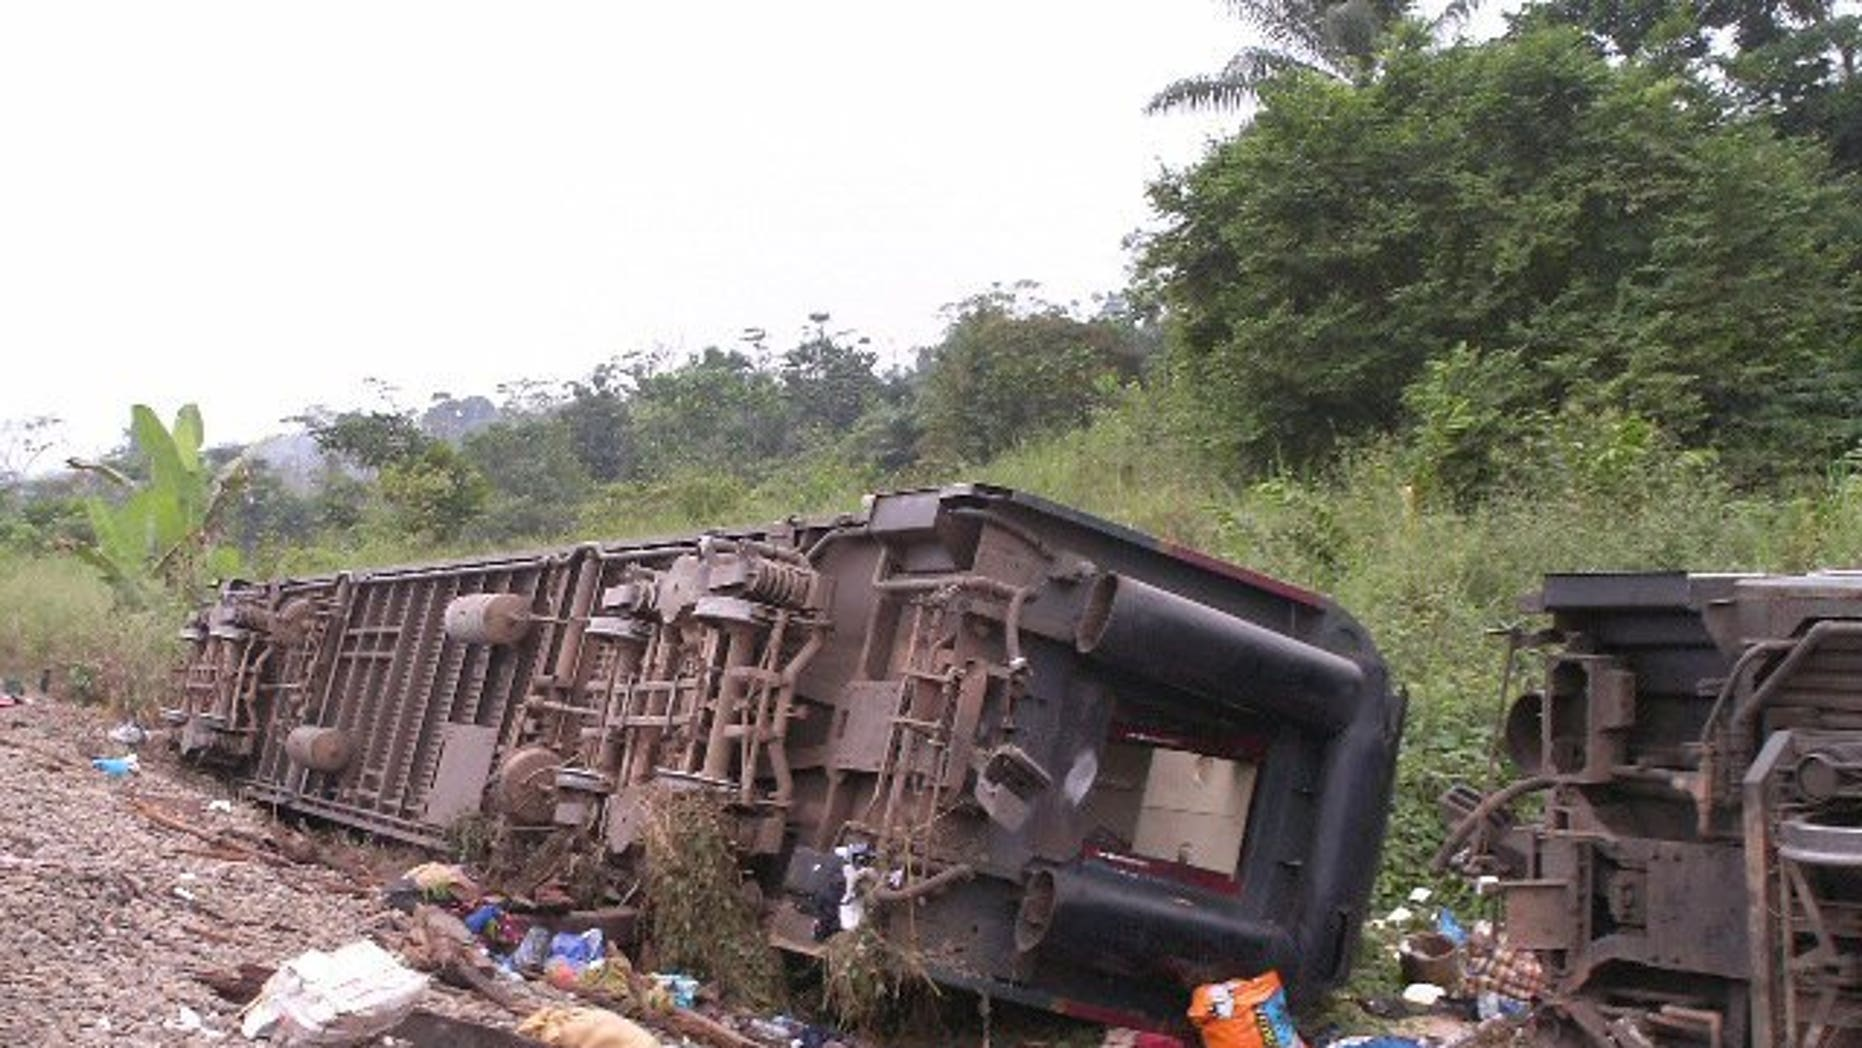 An overturned carriages lie near the rail track in Yanga, Congo-Brazzaville, on June 22,2010. A rail crash killed three people and injured 28 others in the Republic of Congo, when a passenger train hit one laden with oil tankers, a transport official said Tuesday.